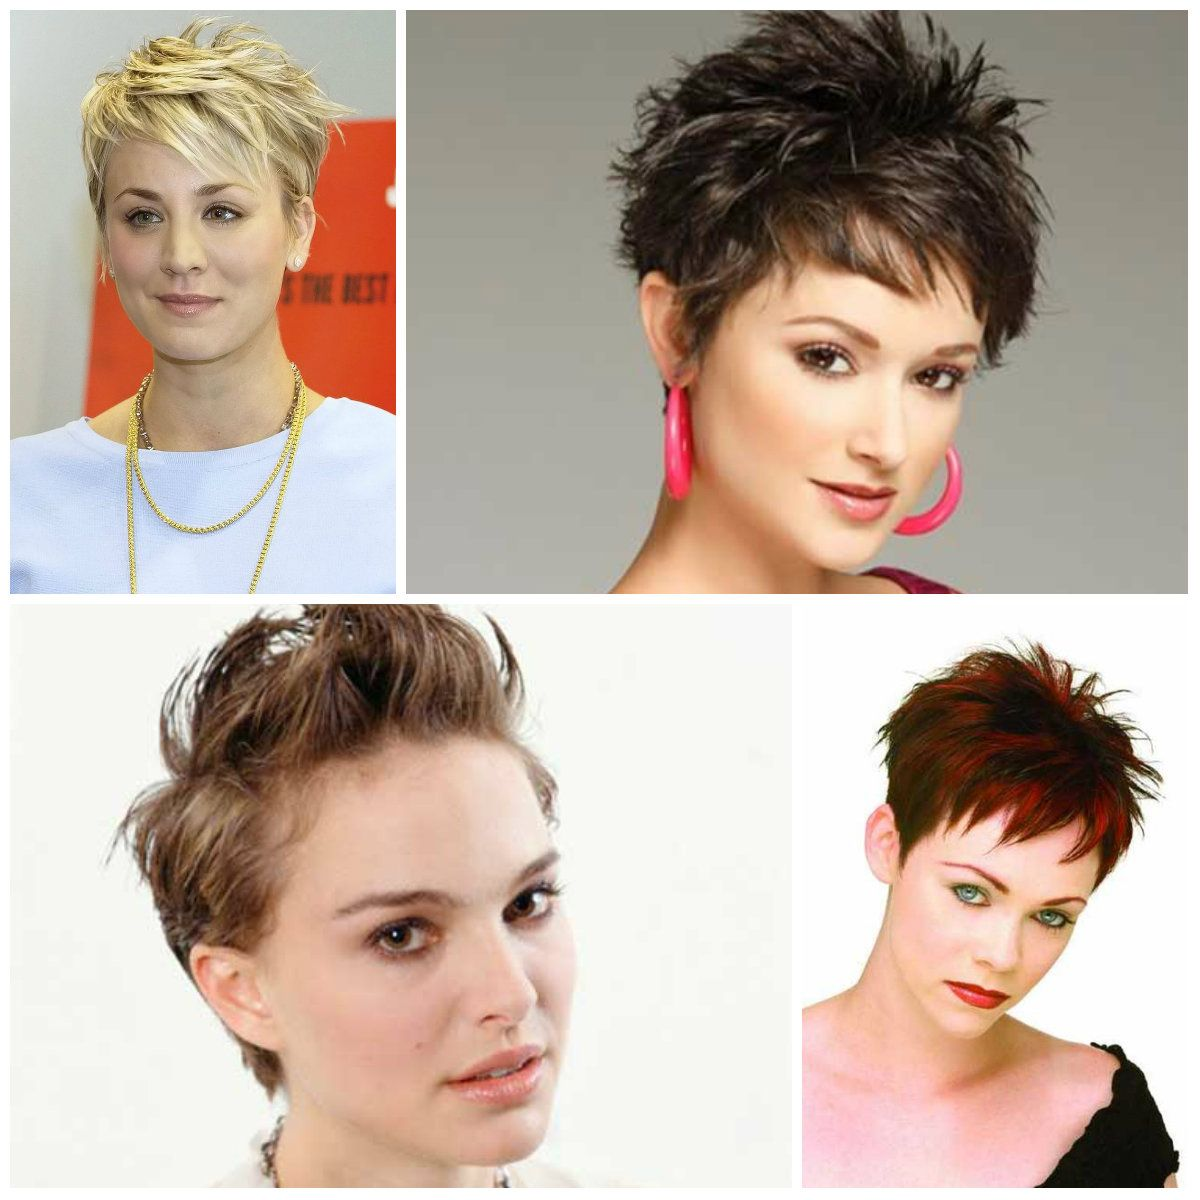 Hottest Spiky Pixie Hairstyle Ideas – Haircuts and hairstyles for ...